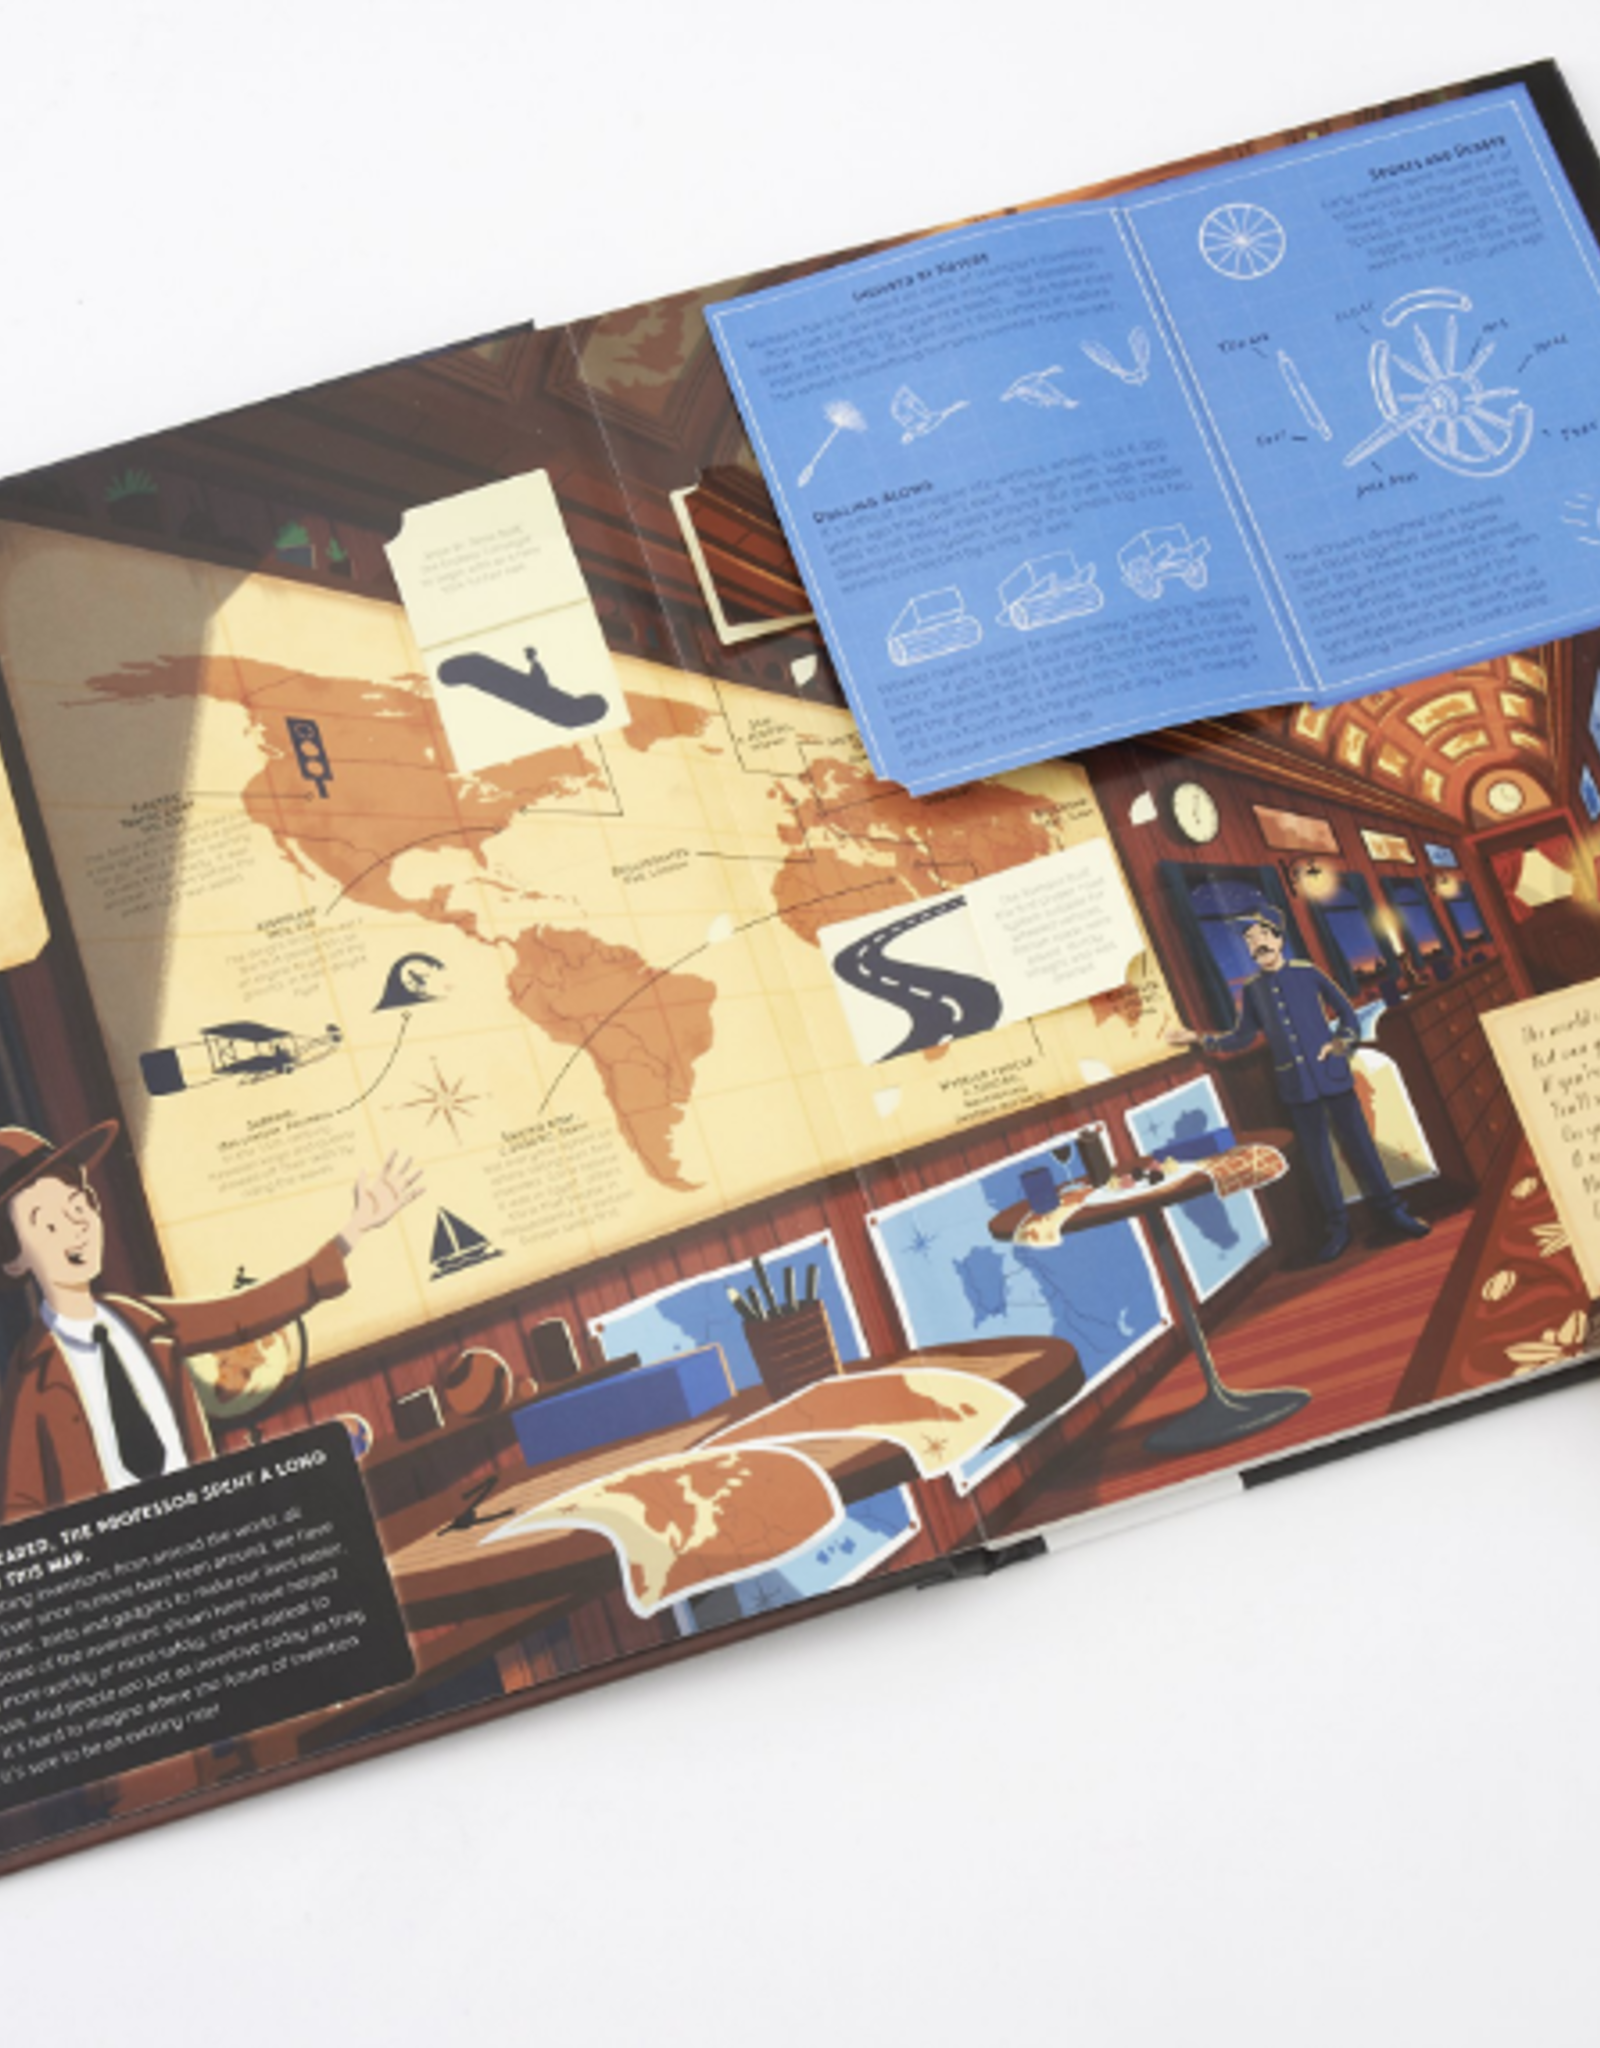 All Aboard the Discovery Express by Emily Hawkins and Tom Adams